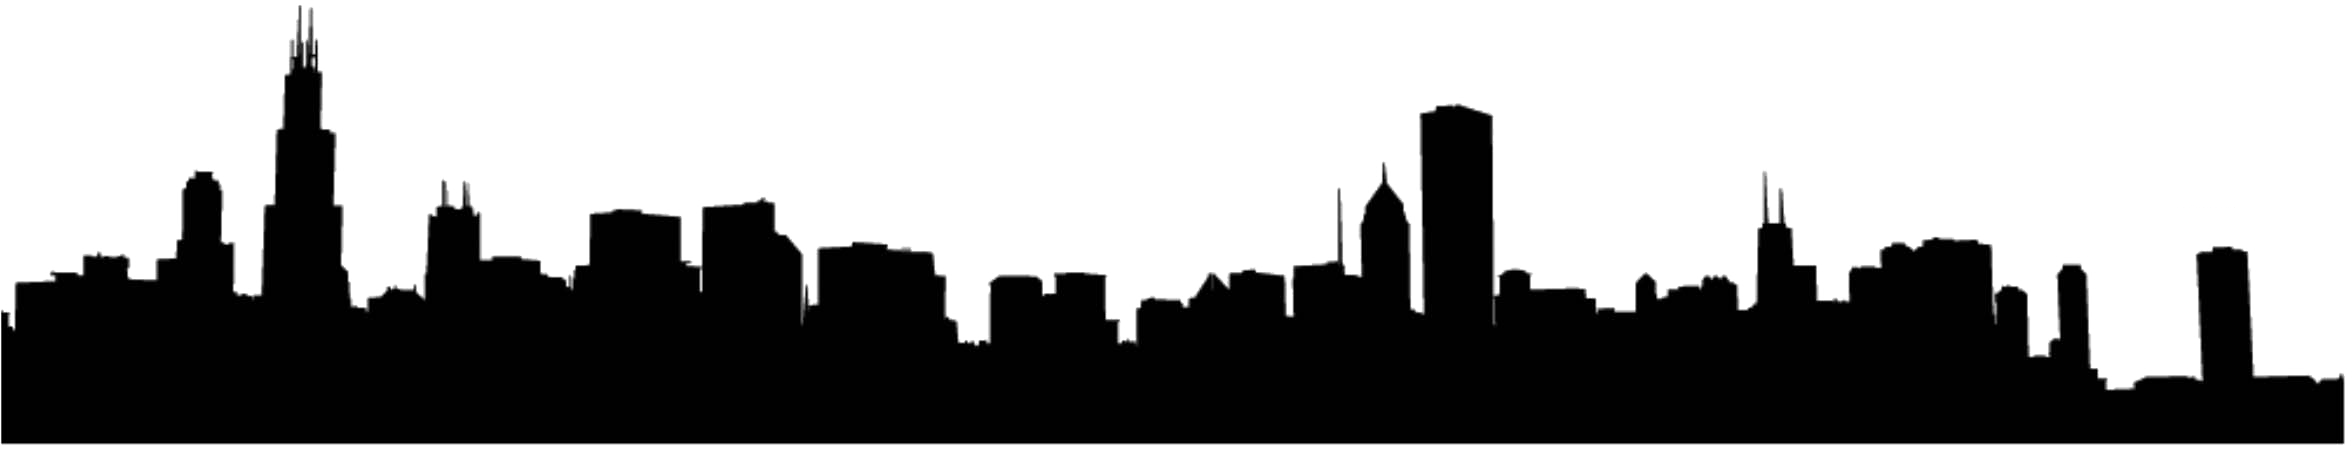 Skyline transparent world silhouette. The zen of silhouettes clip art library stock